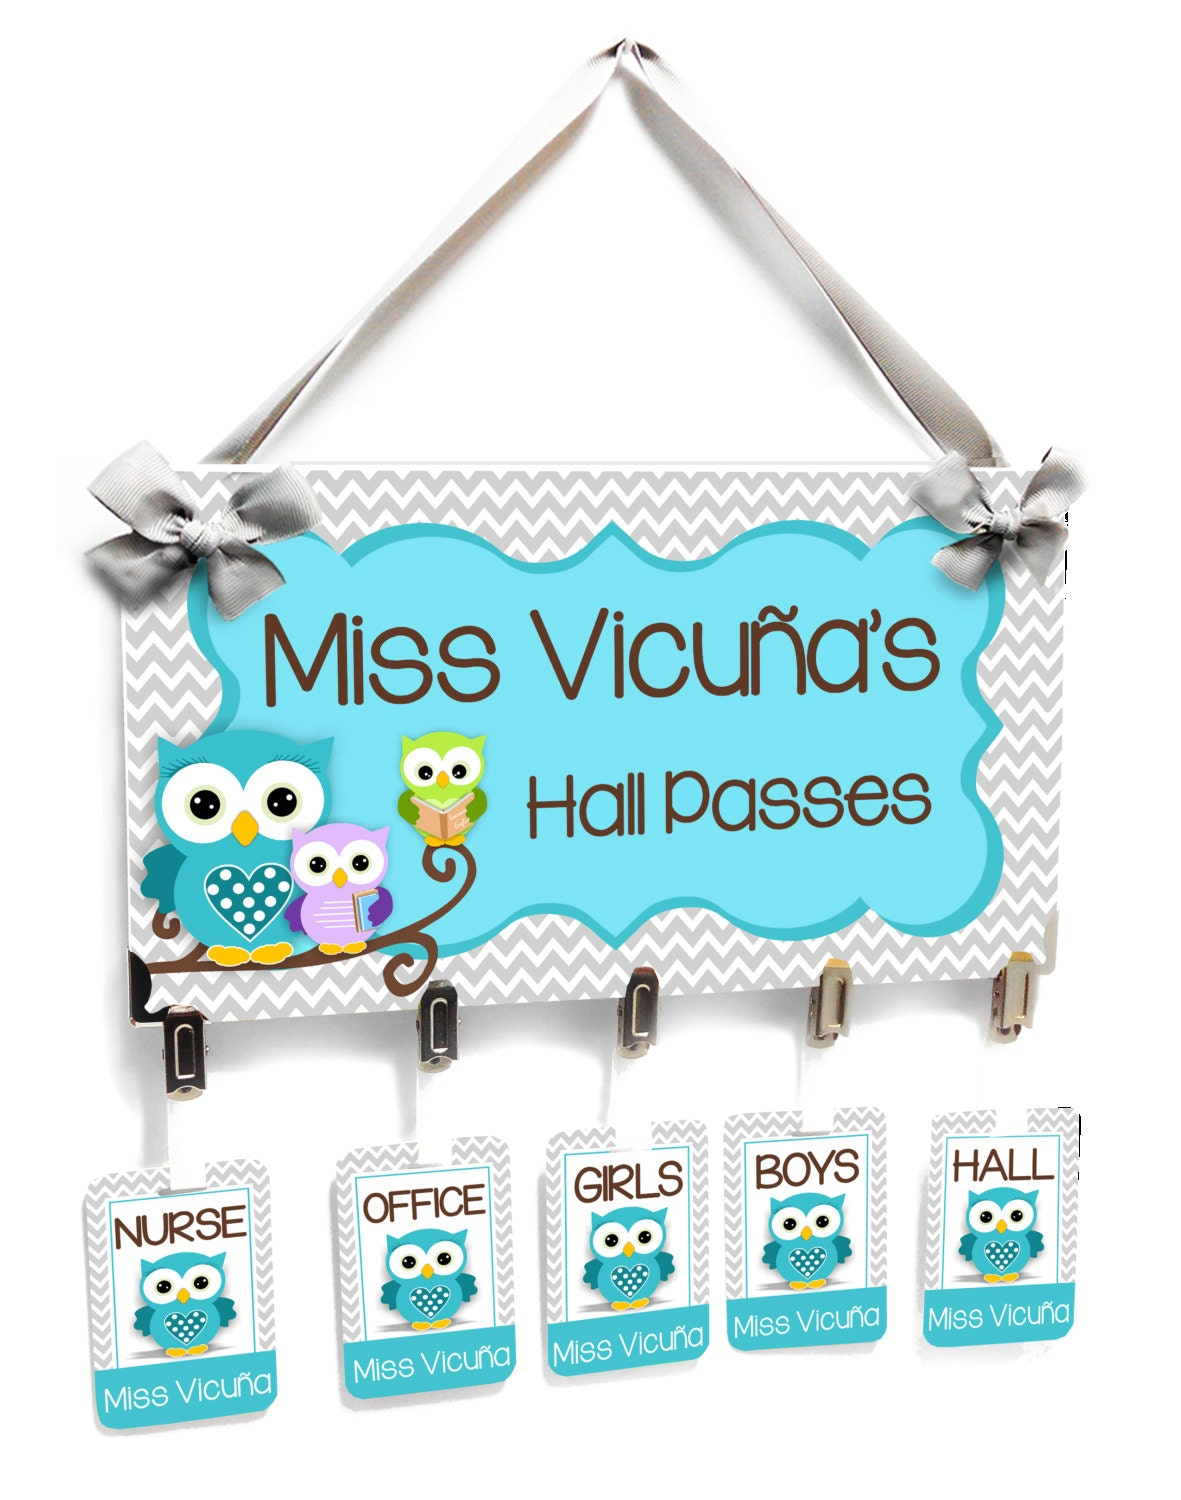 Personalized polka dot bathroom passes images amp pictures becuo